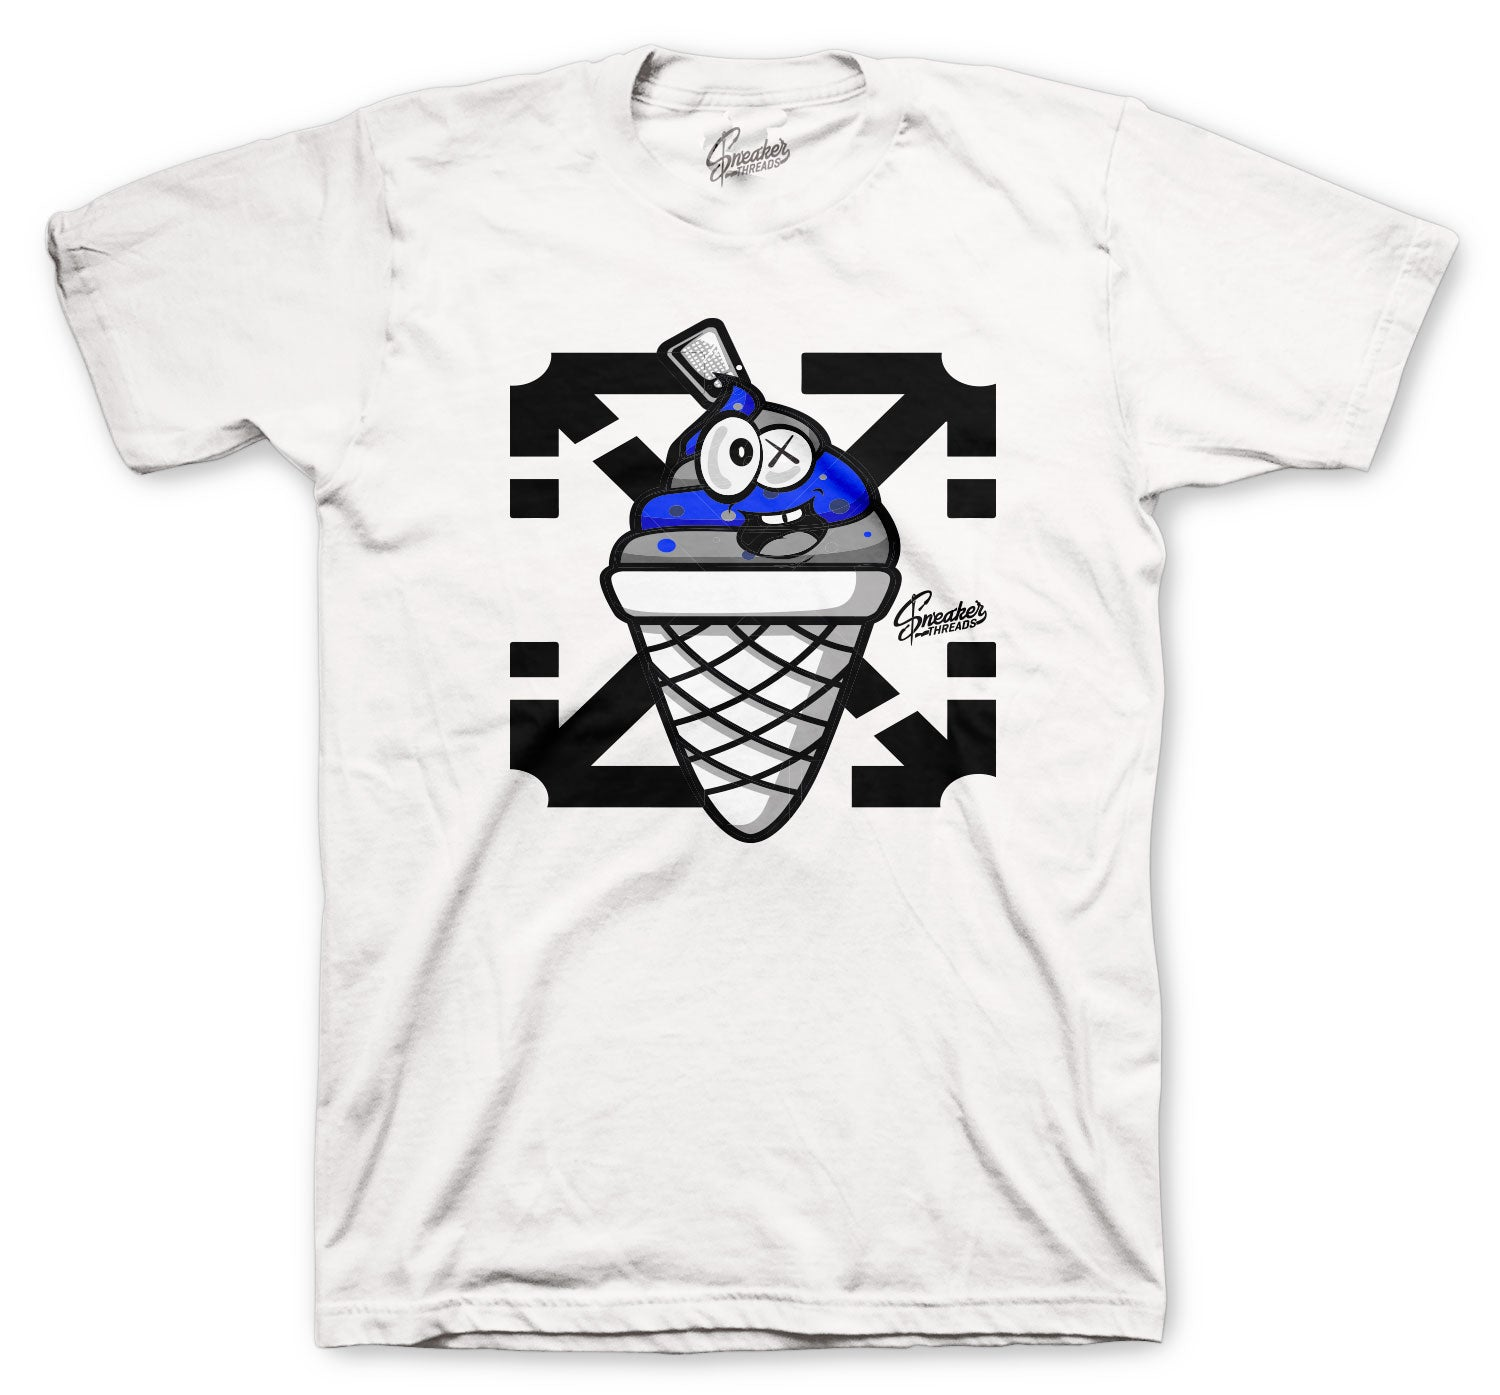 Jordan 14 Hyper Royal Shirt - Lucky Charm - White